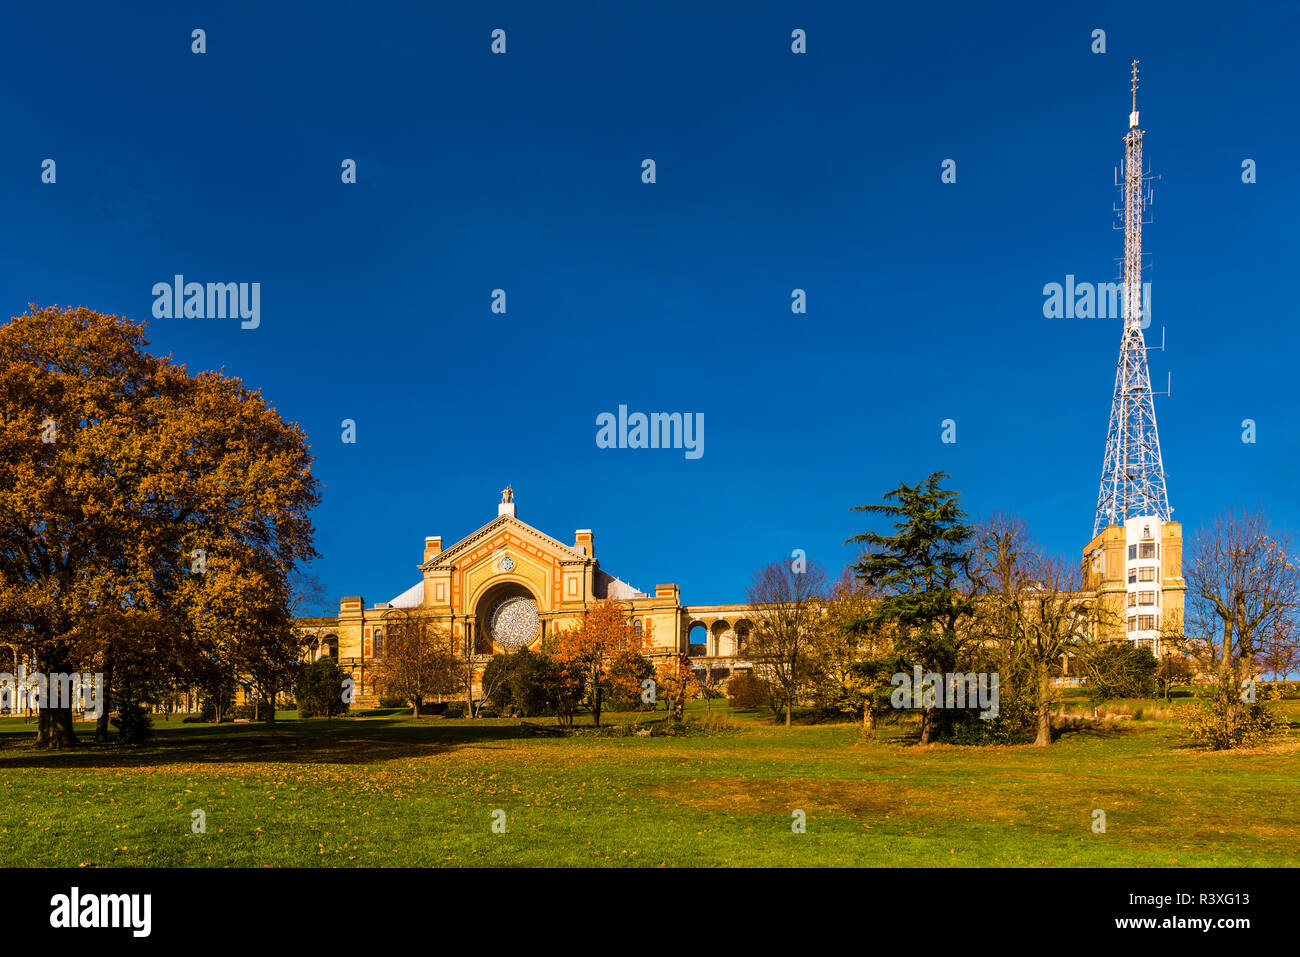 Autumn morning at the southern facade of Alexandra Palace, London, UK - Stock Image